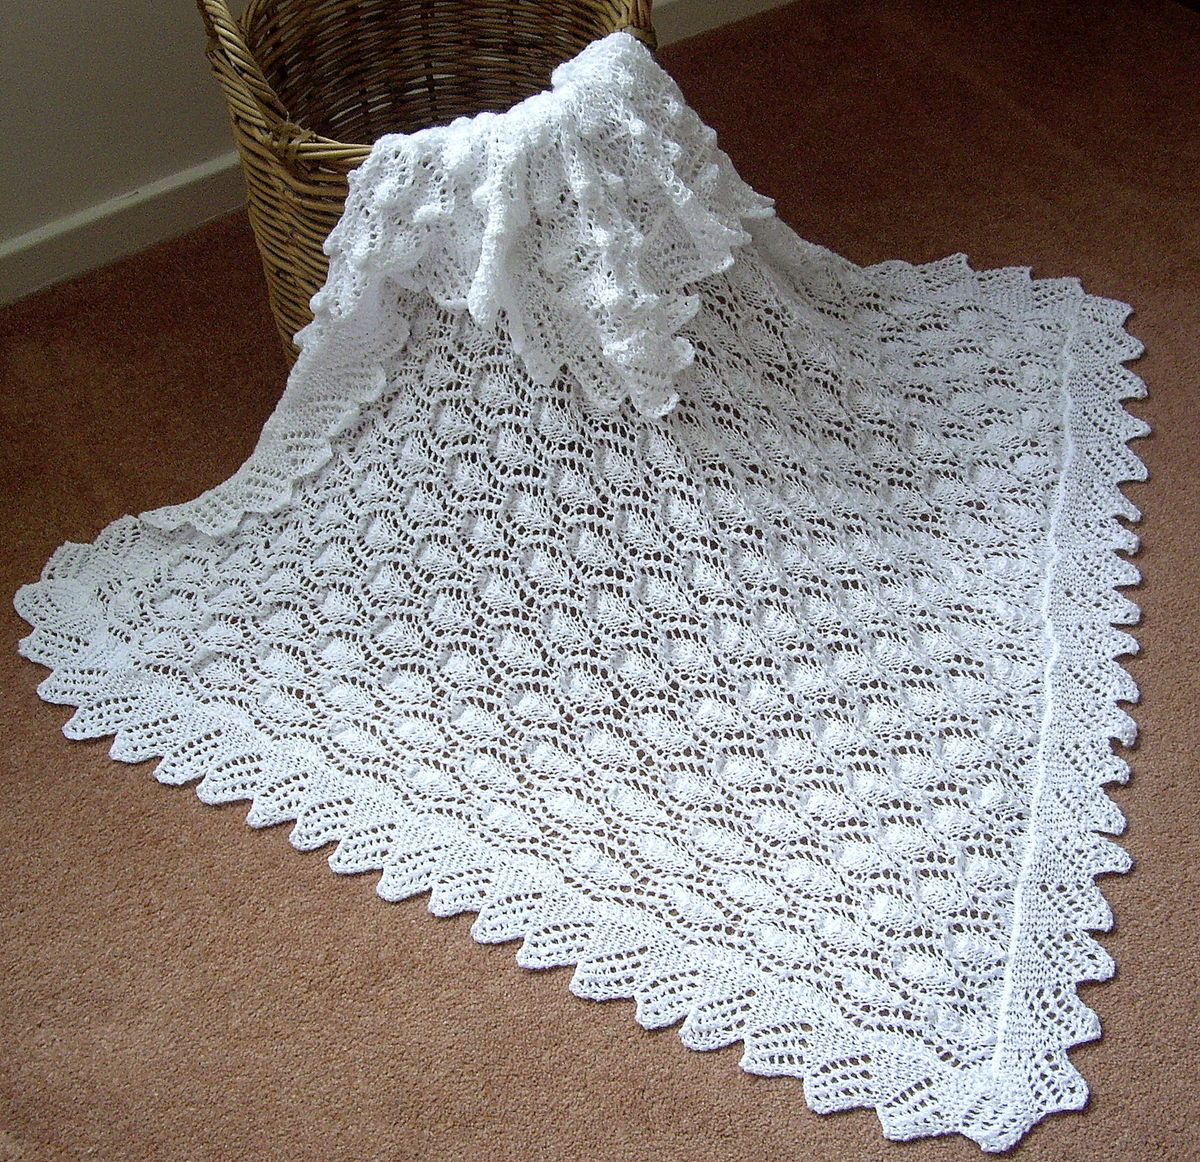 Beautiful baby shawl blanket hand knitted in a lace medallion beautiful baby shawl blanket hand knitted in a lace medallion pattern bankloansurffo Image collections